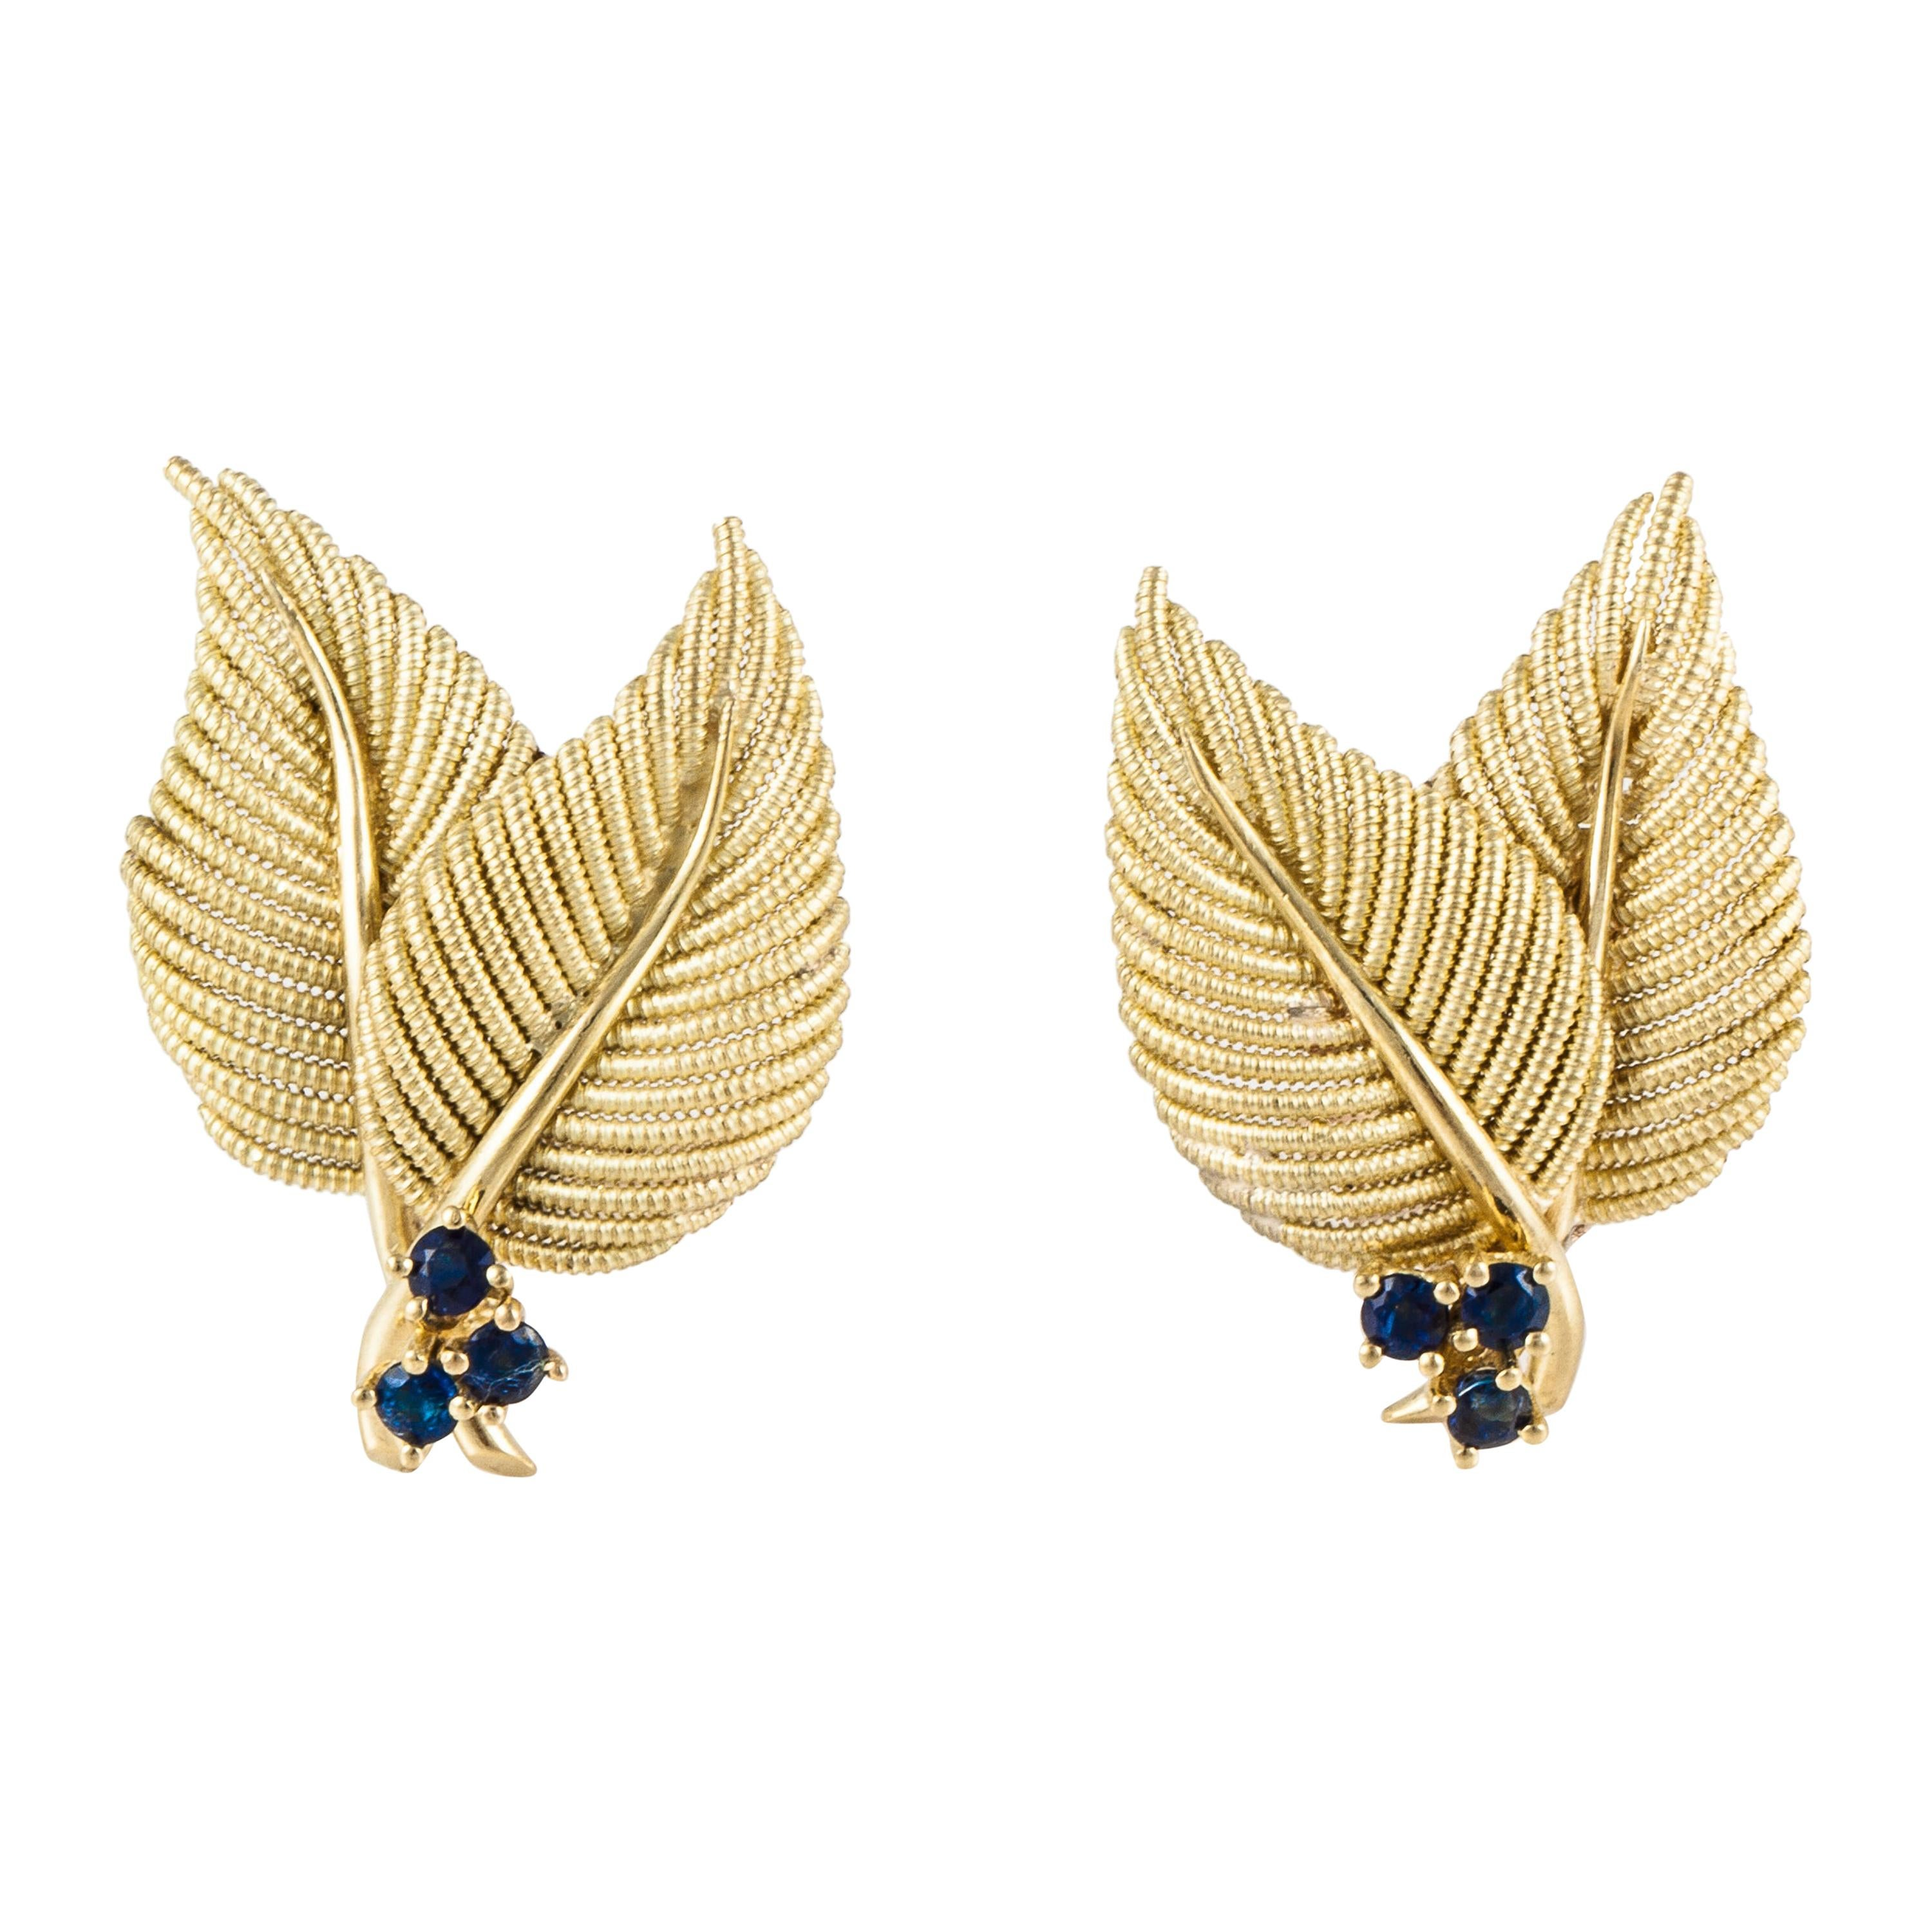 Tiffany & Co. 18K Gold Leaf Earrings with Sapphires